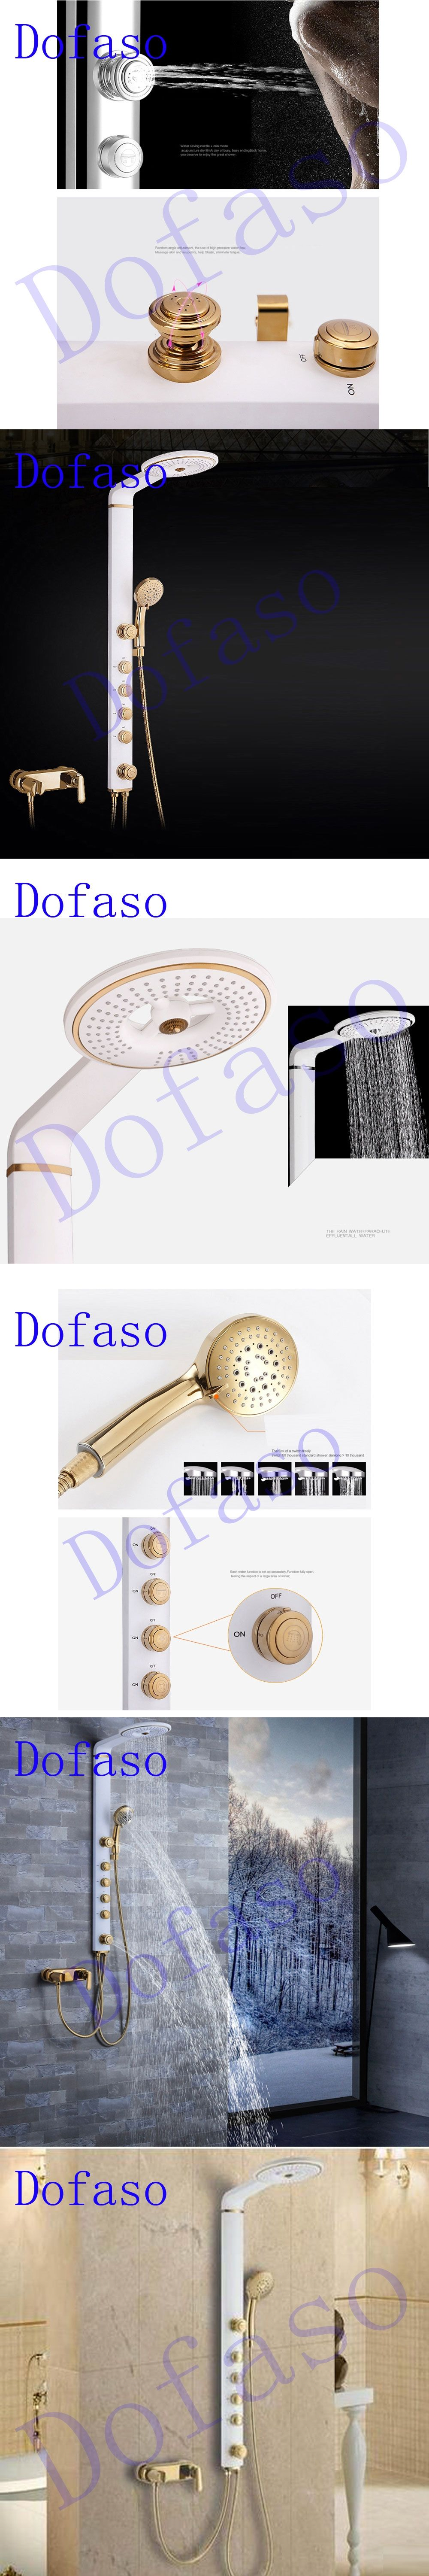 Bathroom Fixtures Dofaso Full Copper Bathroom Shower Faucets Systems Luxury White And Golden Rain Shower Panel Nozzle Sets Gold Shower Taps